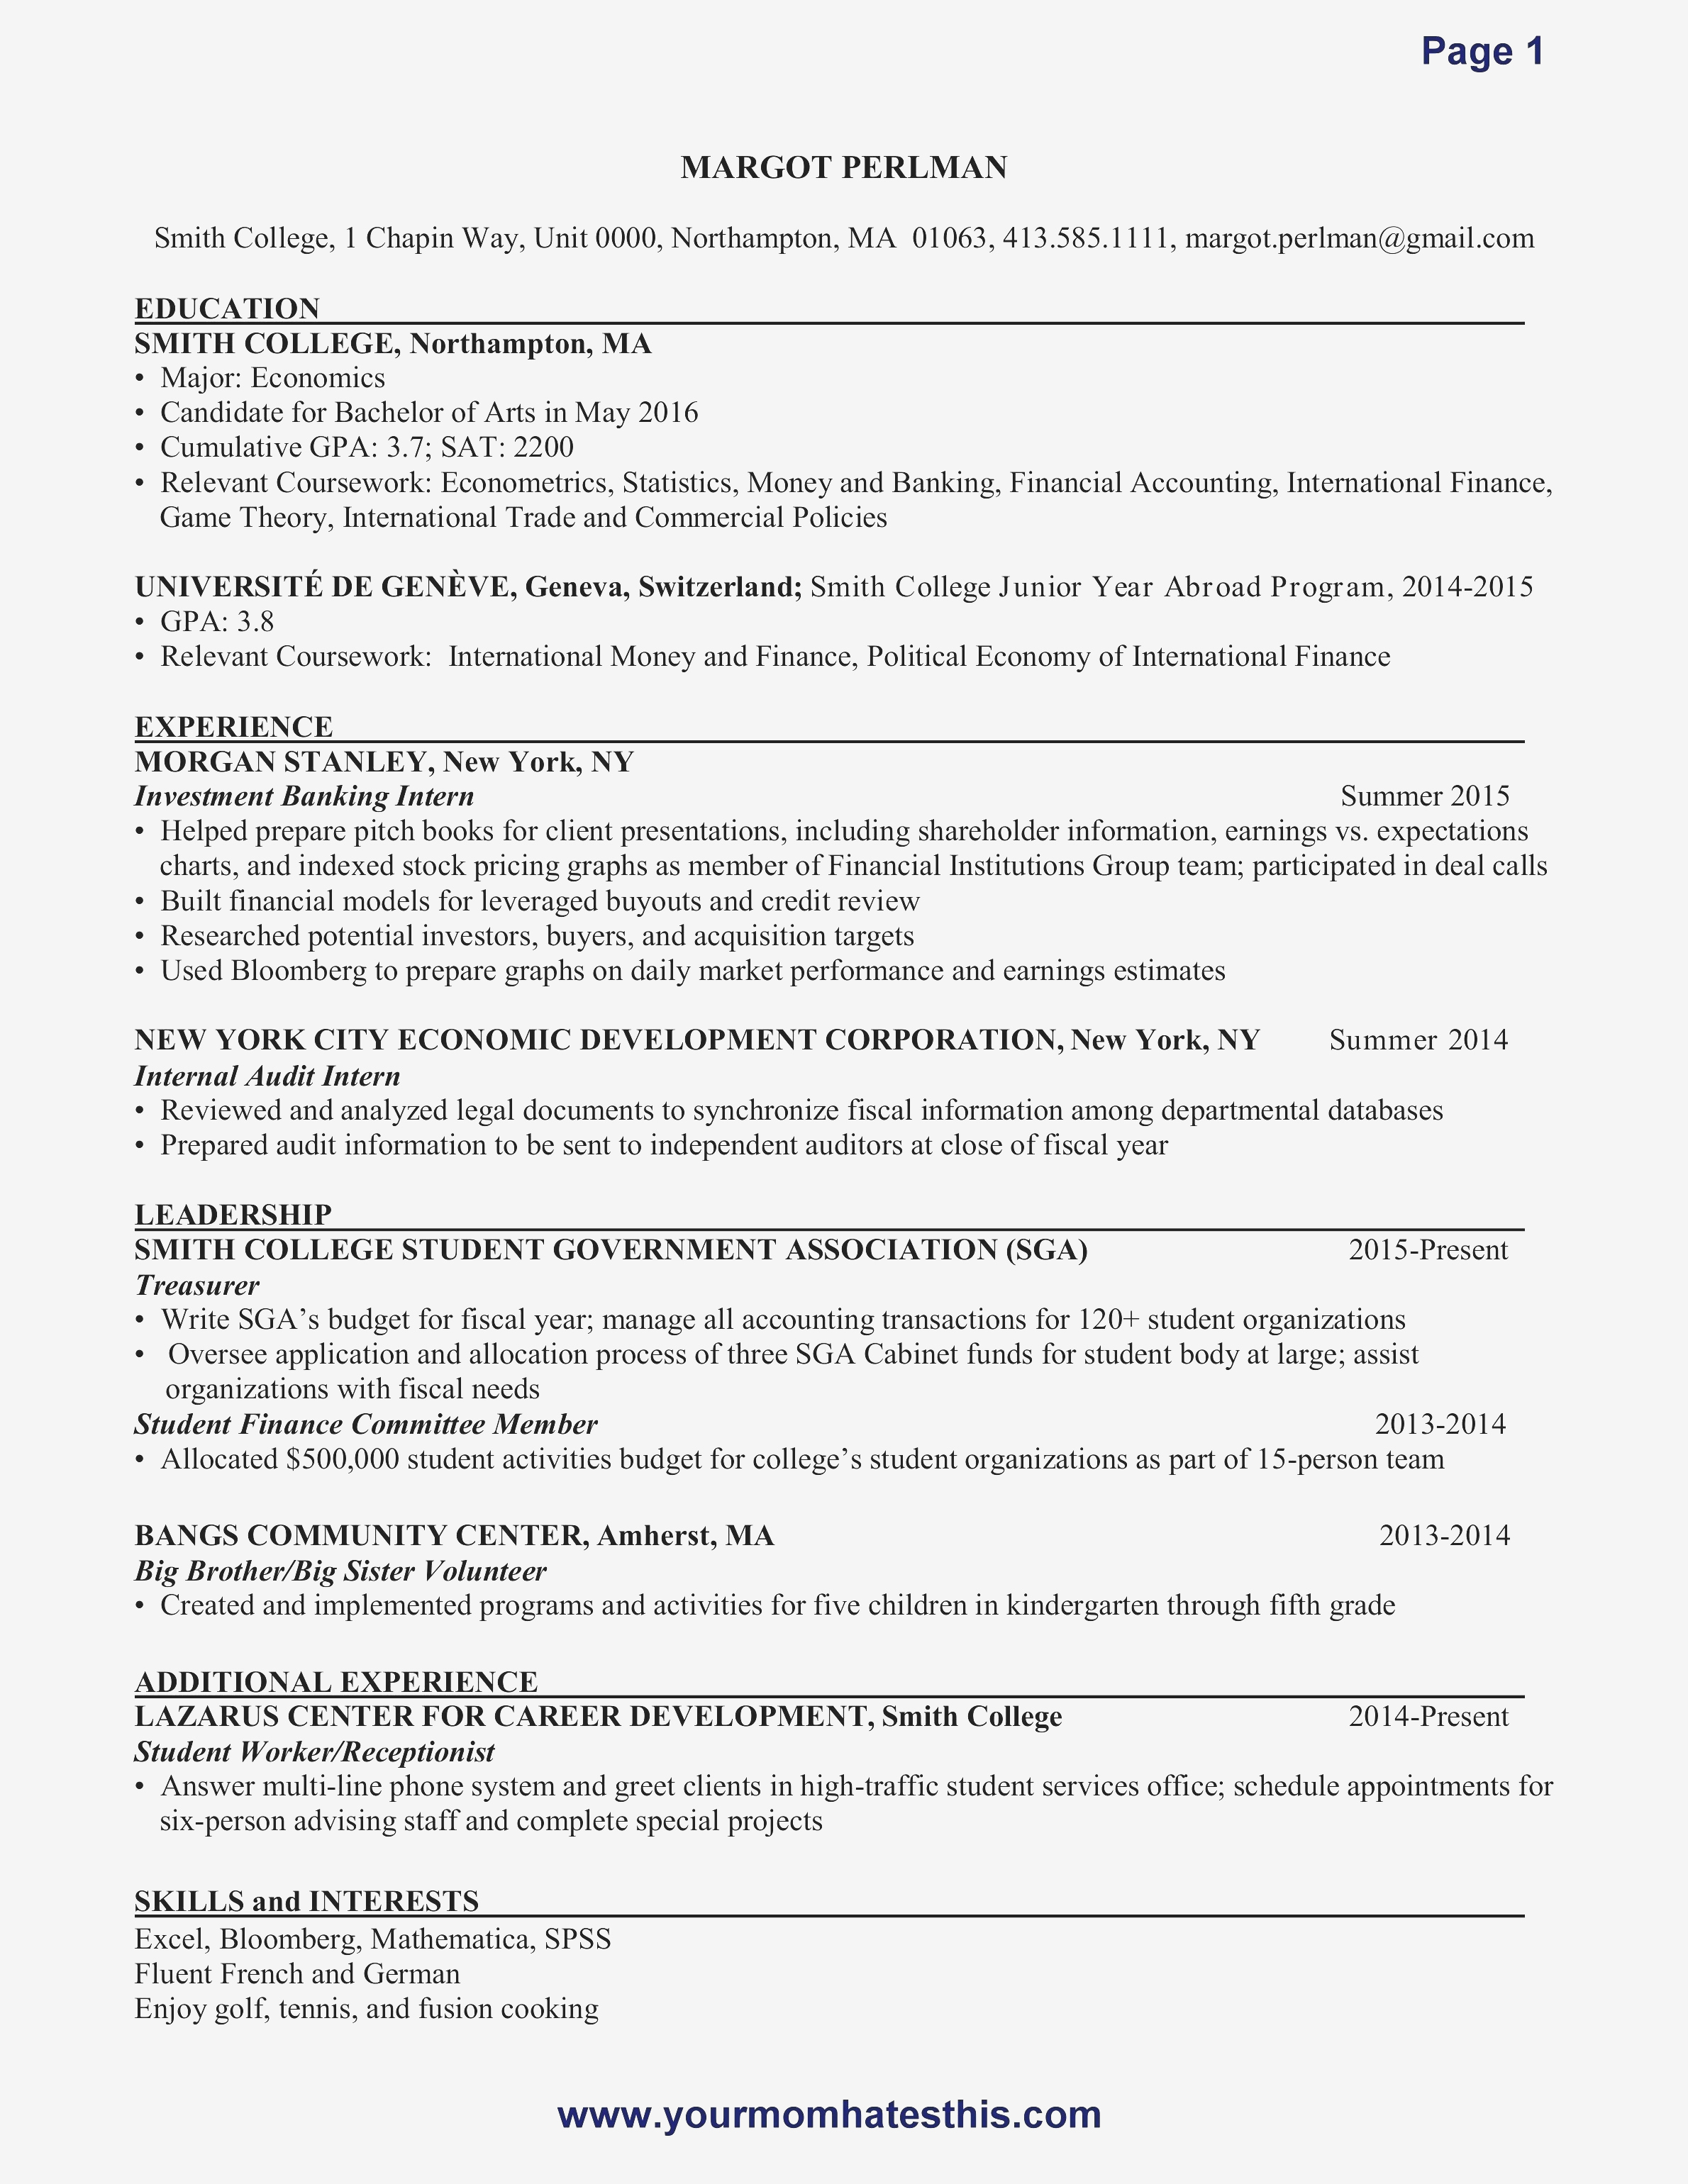 Property Management Resume Template - Gmail Resume Templates